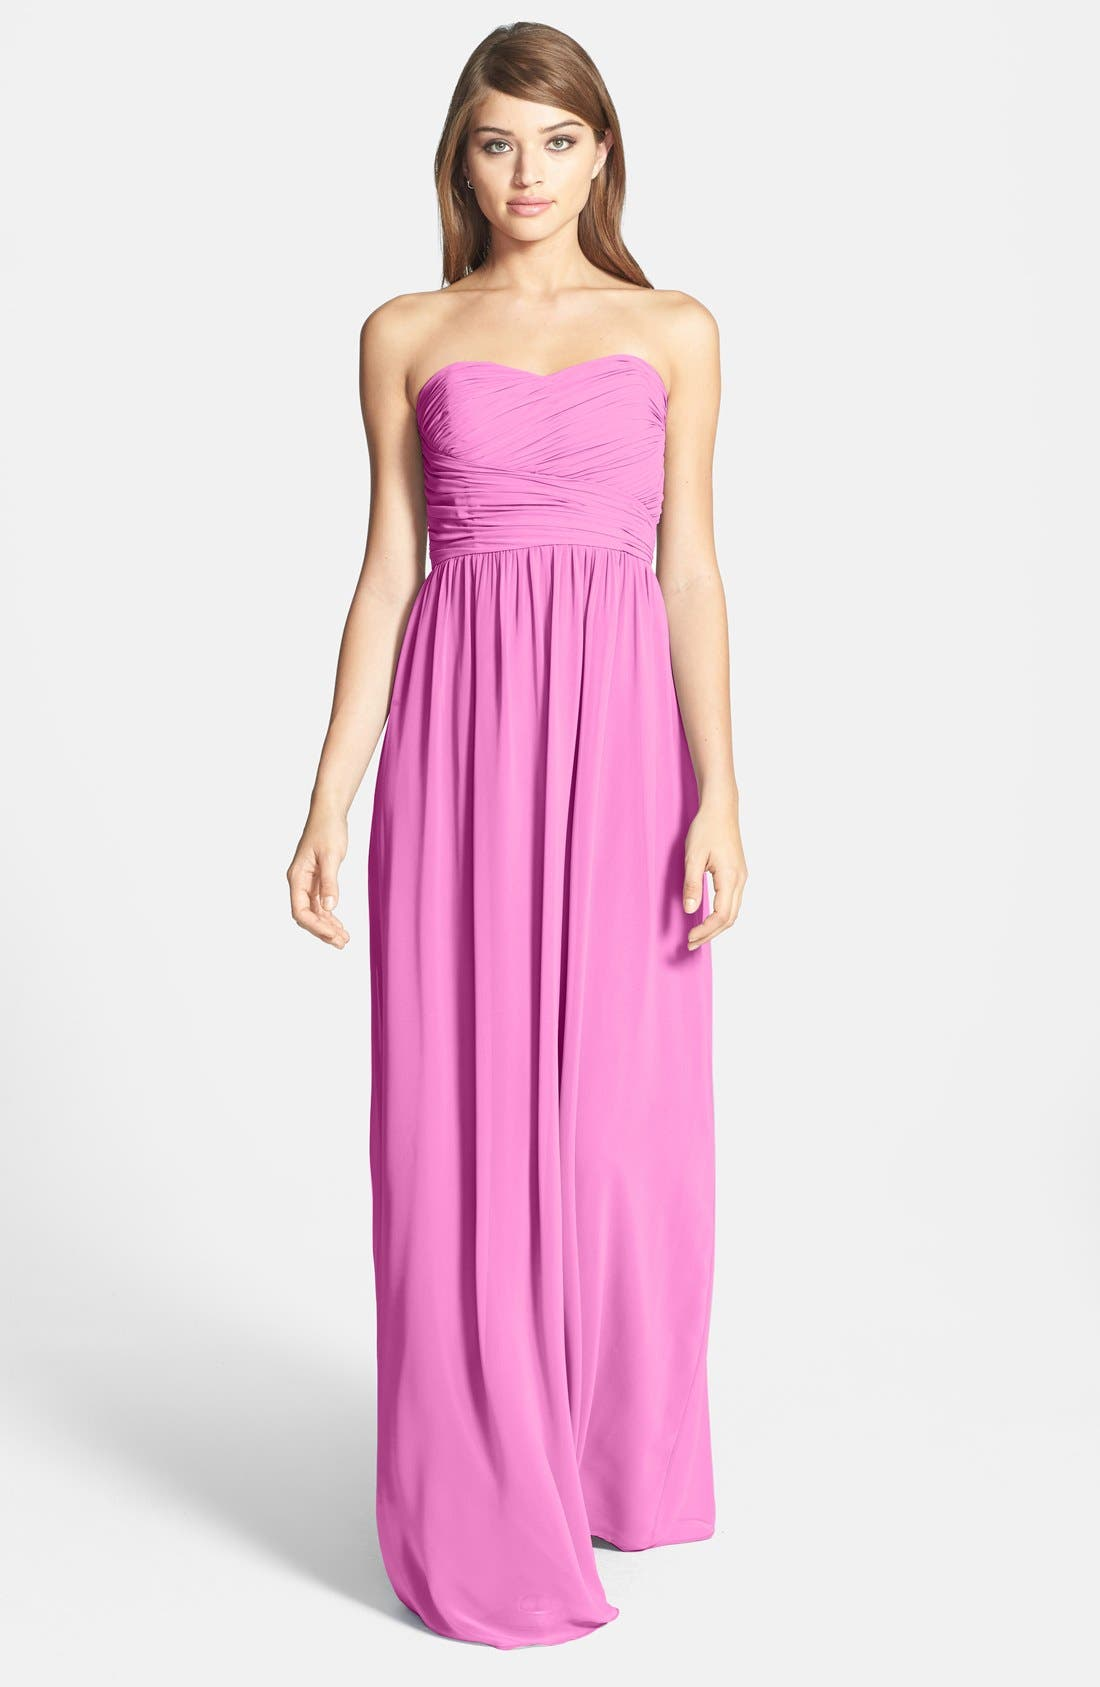 Main Image - Donna Morgan 'Stephanie' Strapless Ruched Chiffon Gown